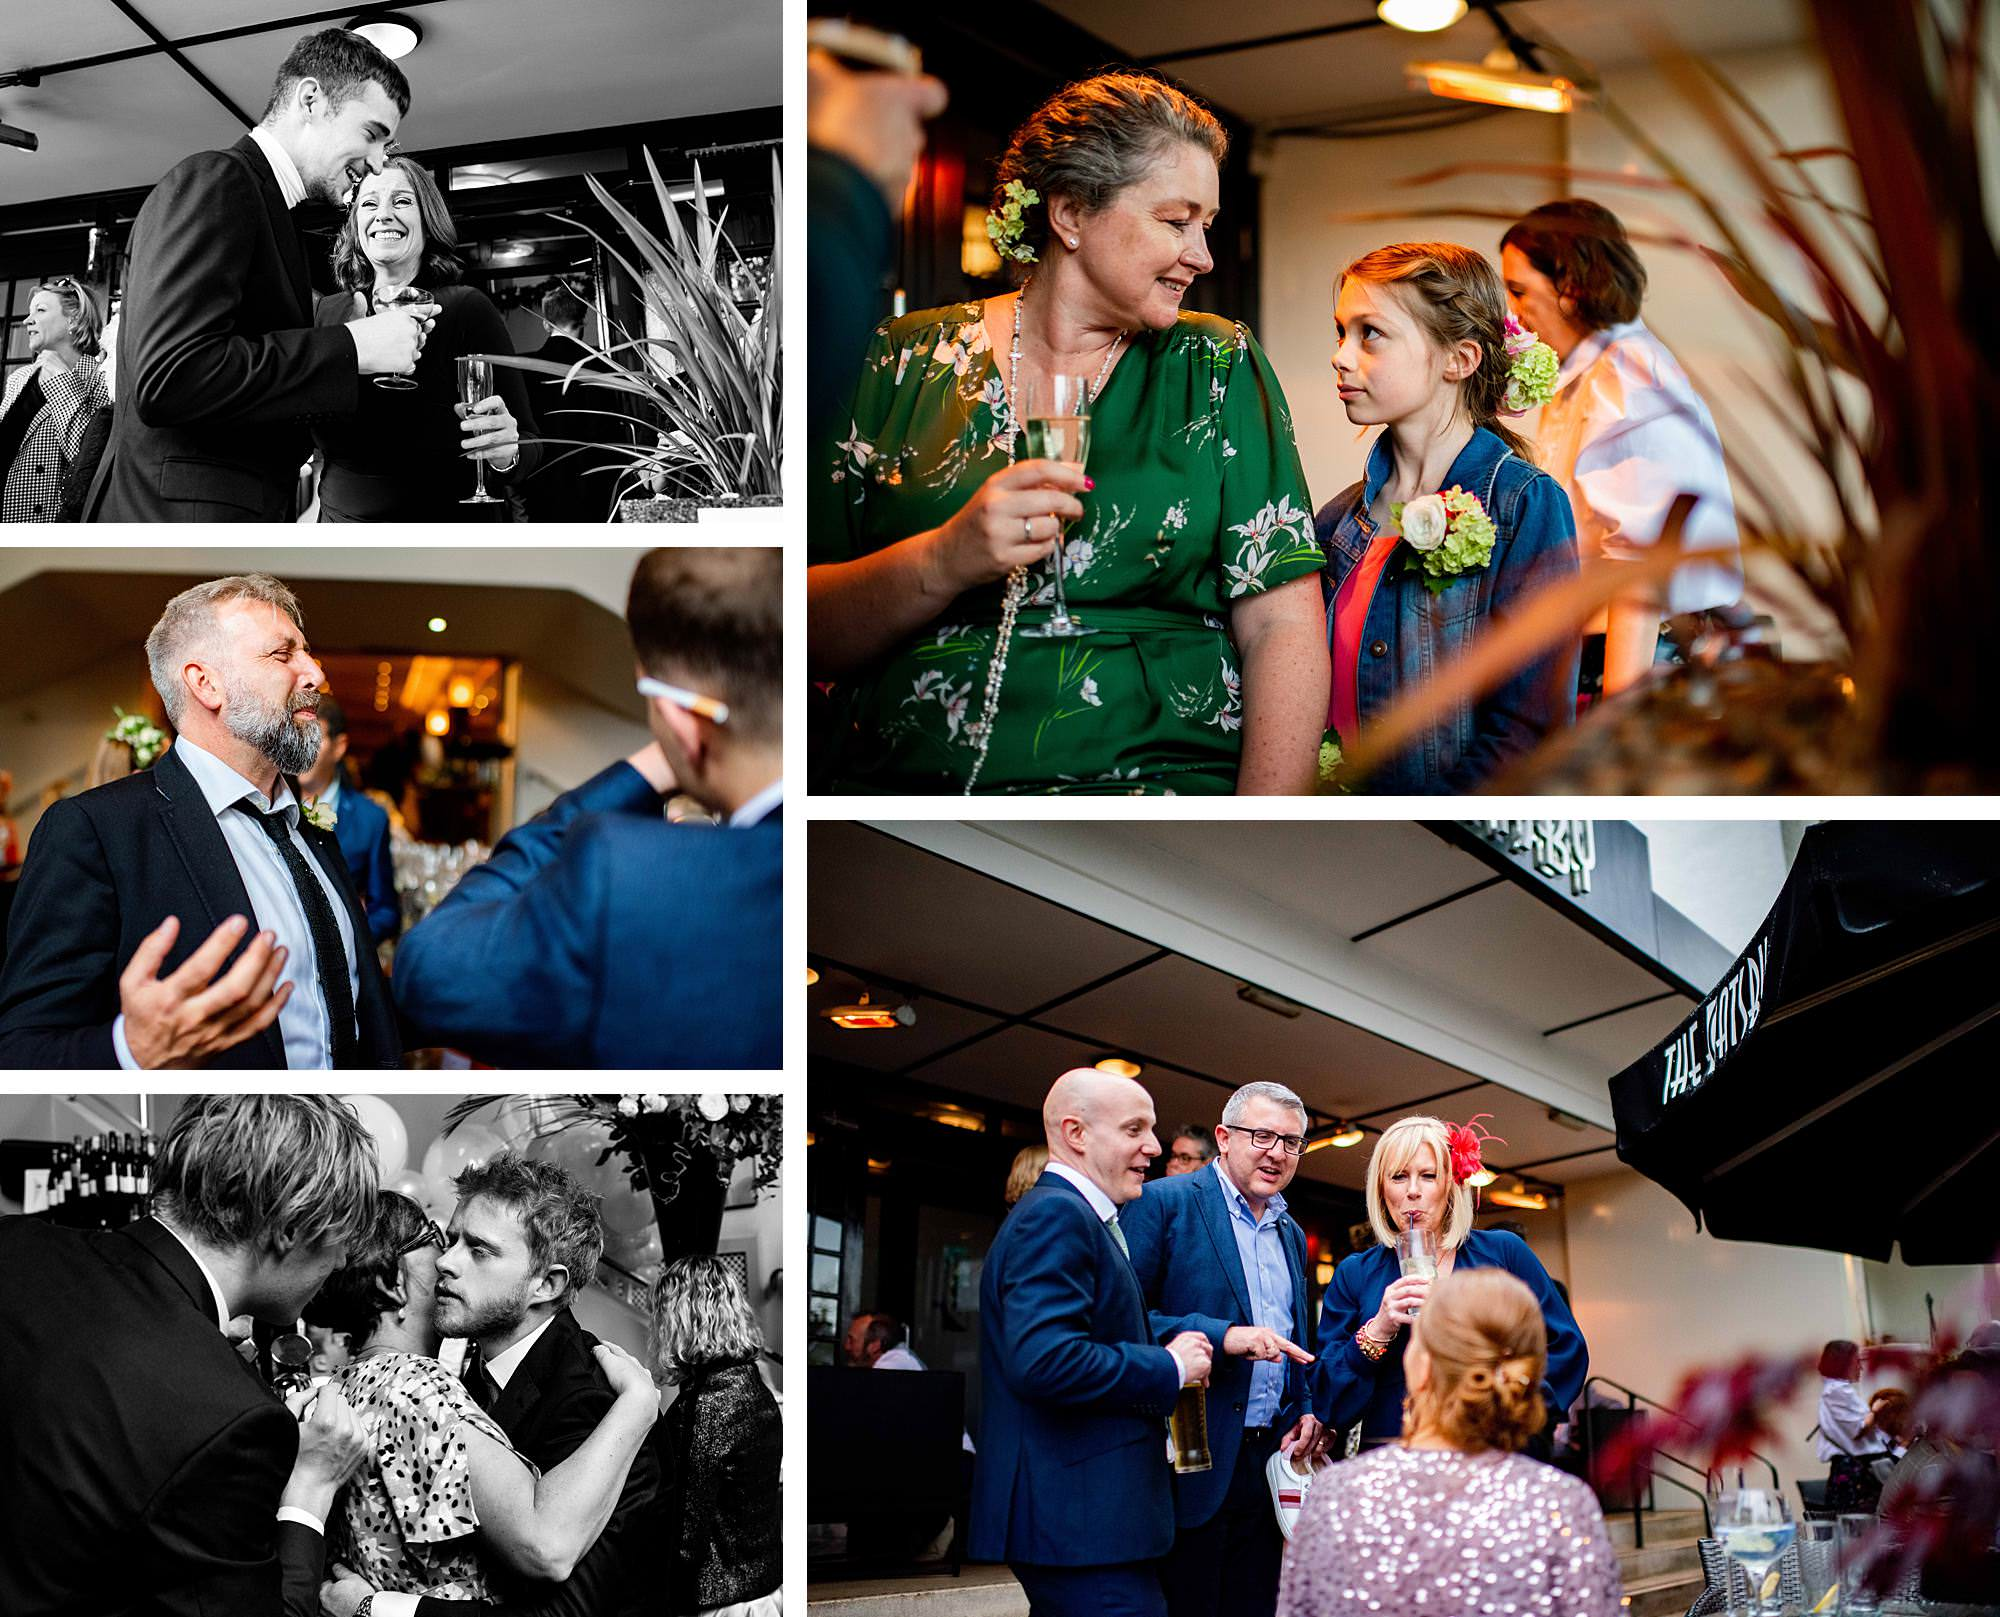 A wedding at The Gatsby Berkhampstead